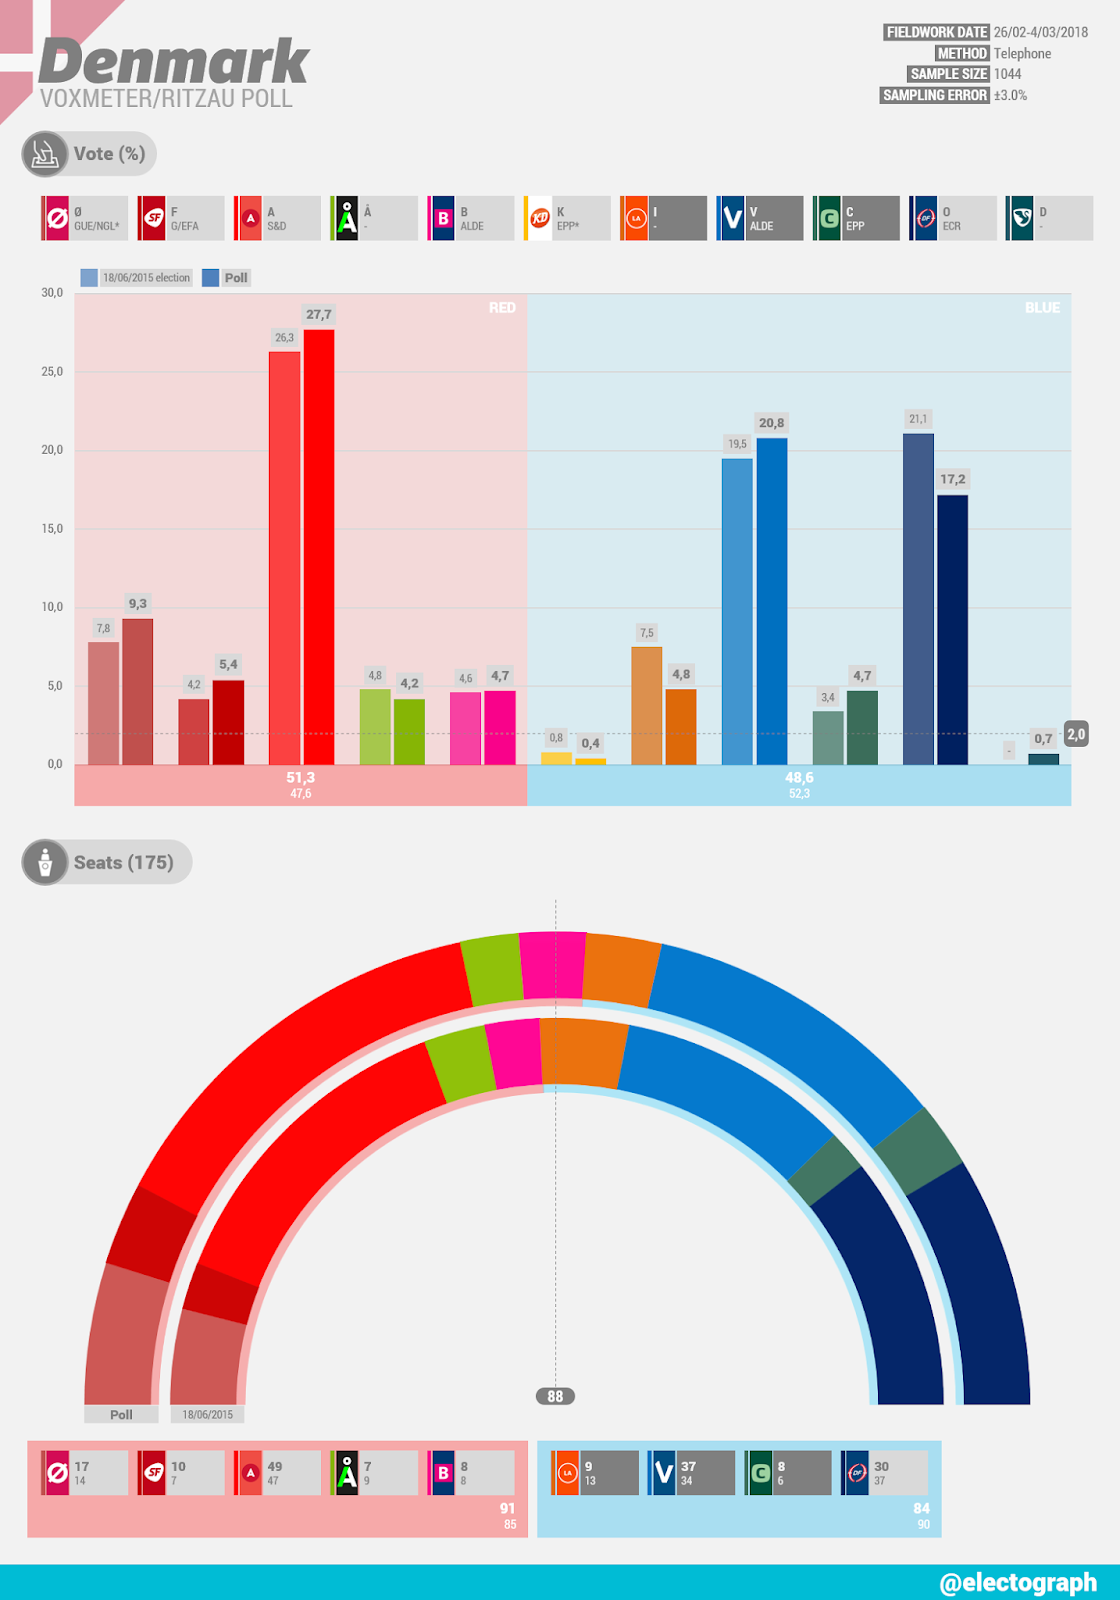 DENMARK Voxmeter poll for Ritzau, March 2018